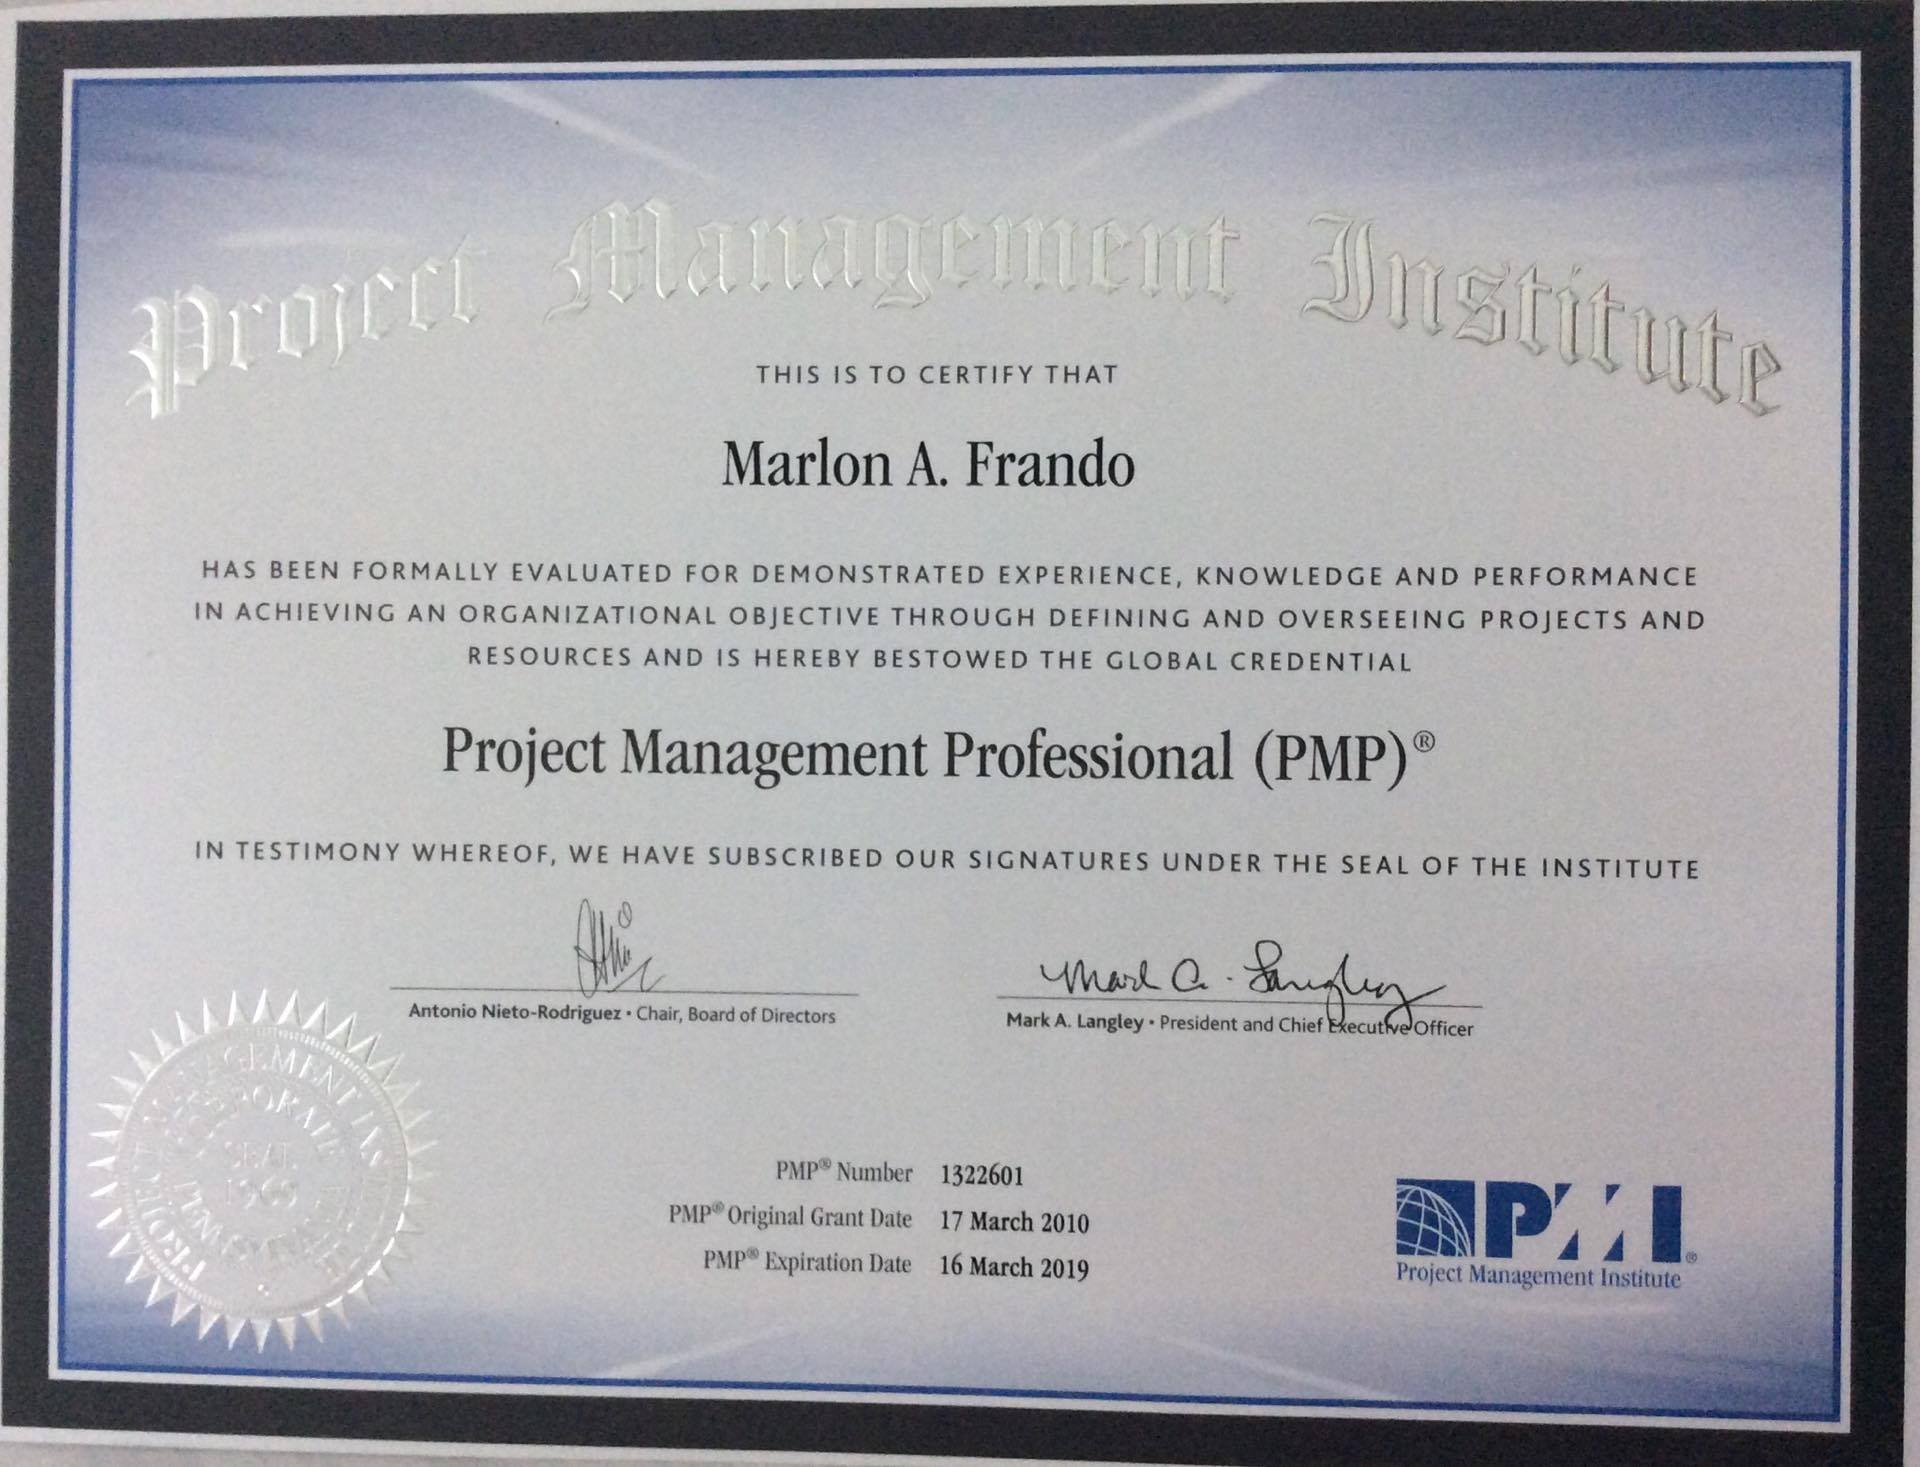 Training Director Professional Certifications Indicating Expertise